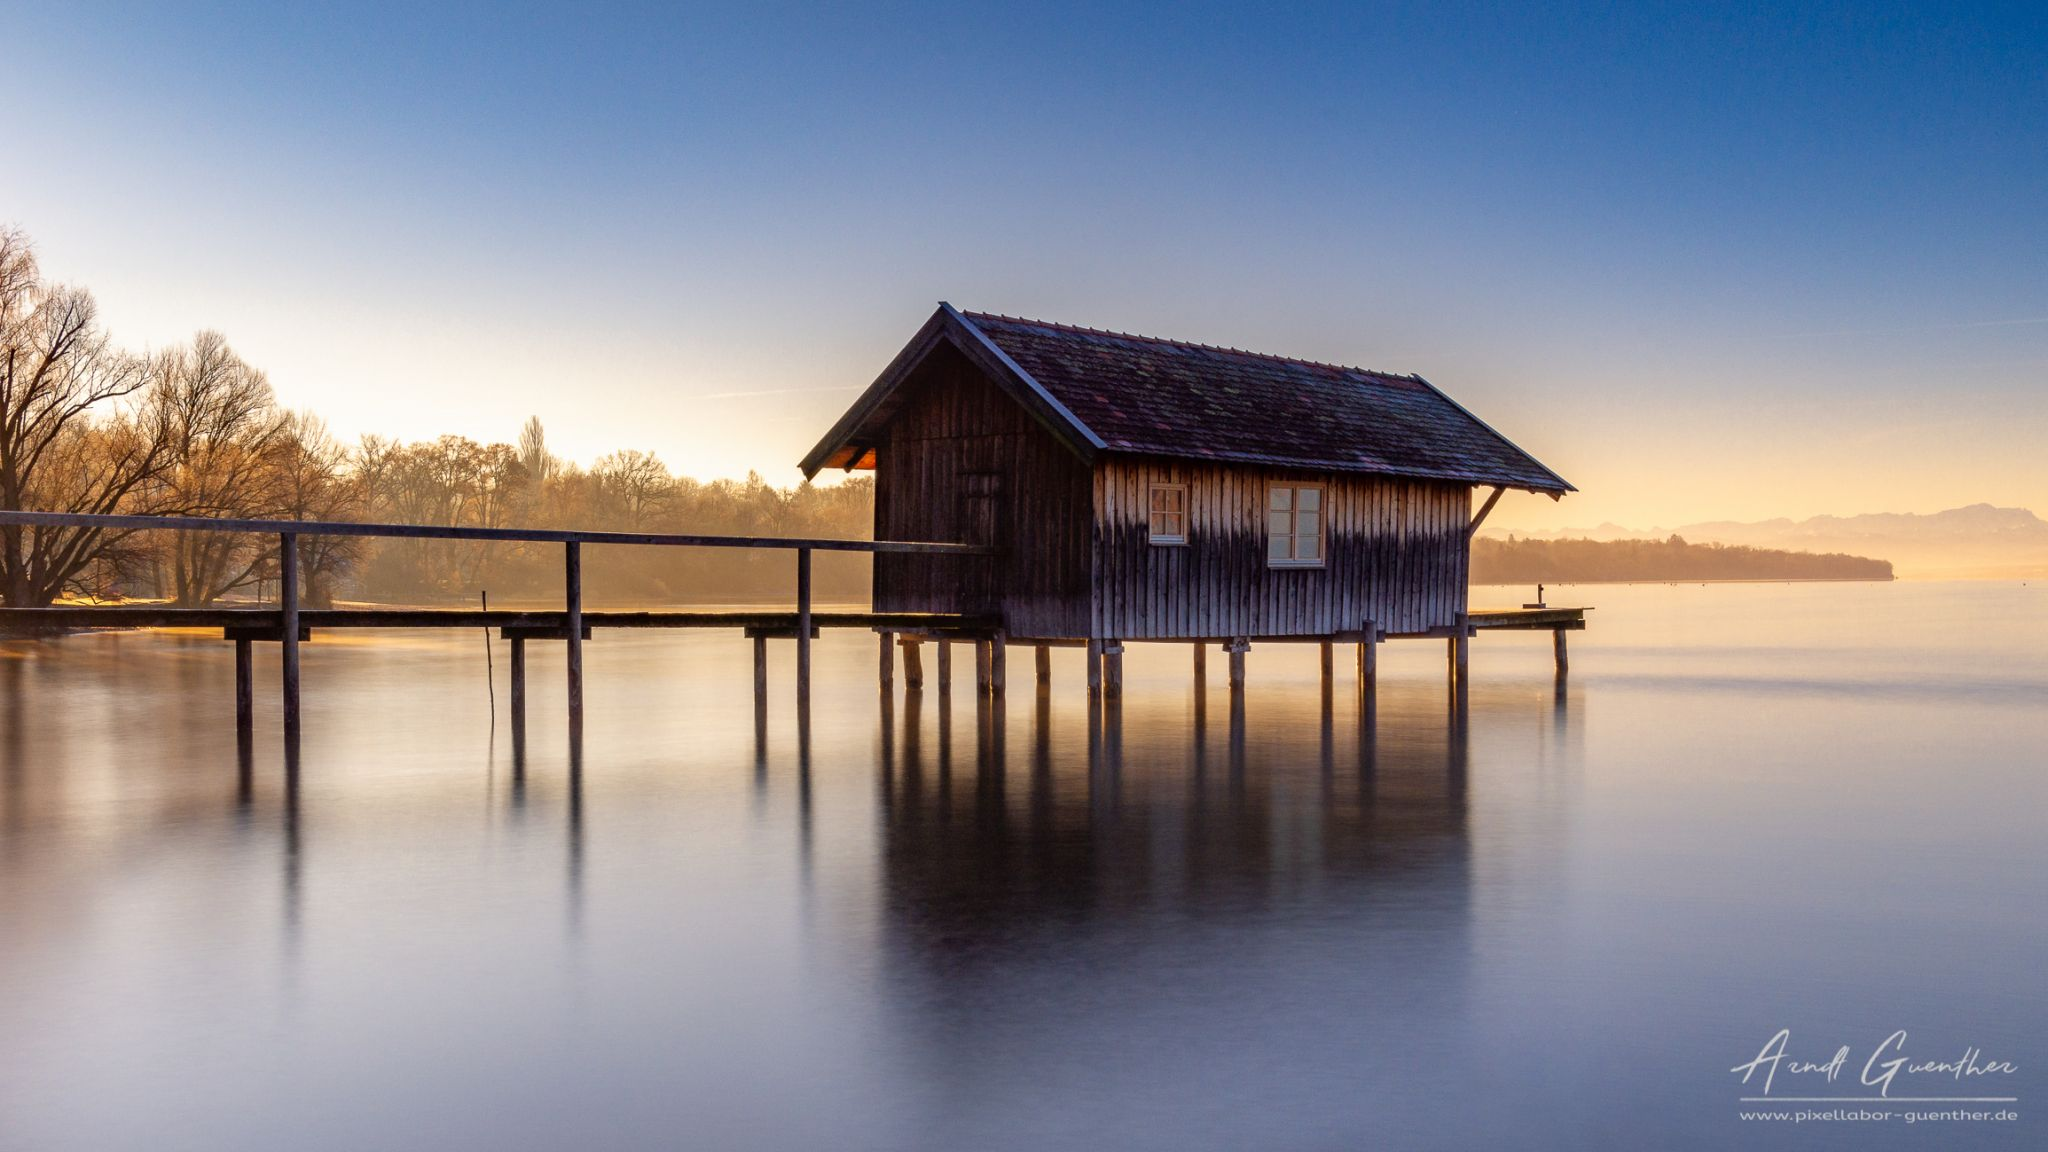 Boathouse at the Ammersee, Germany